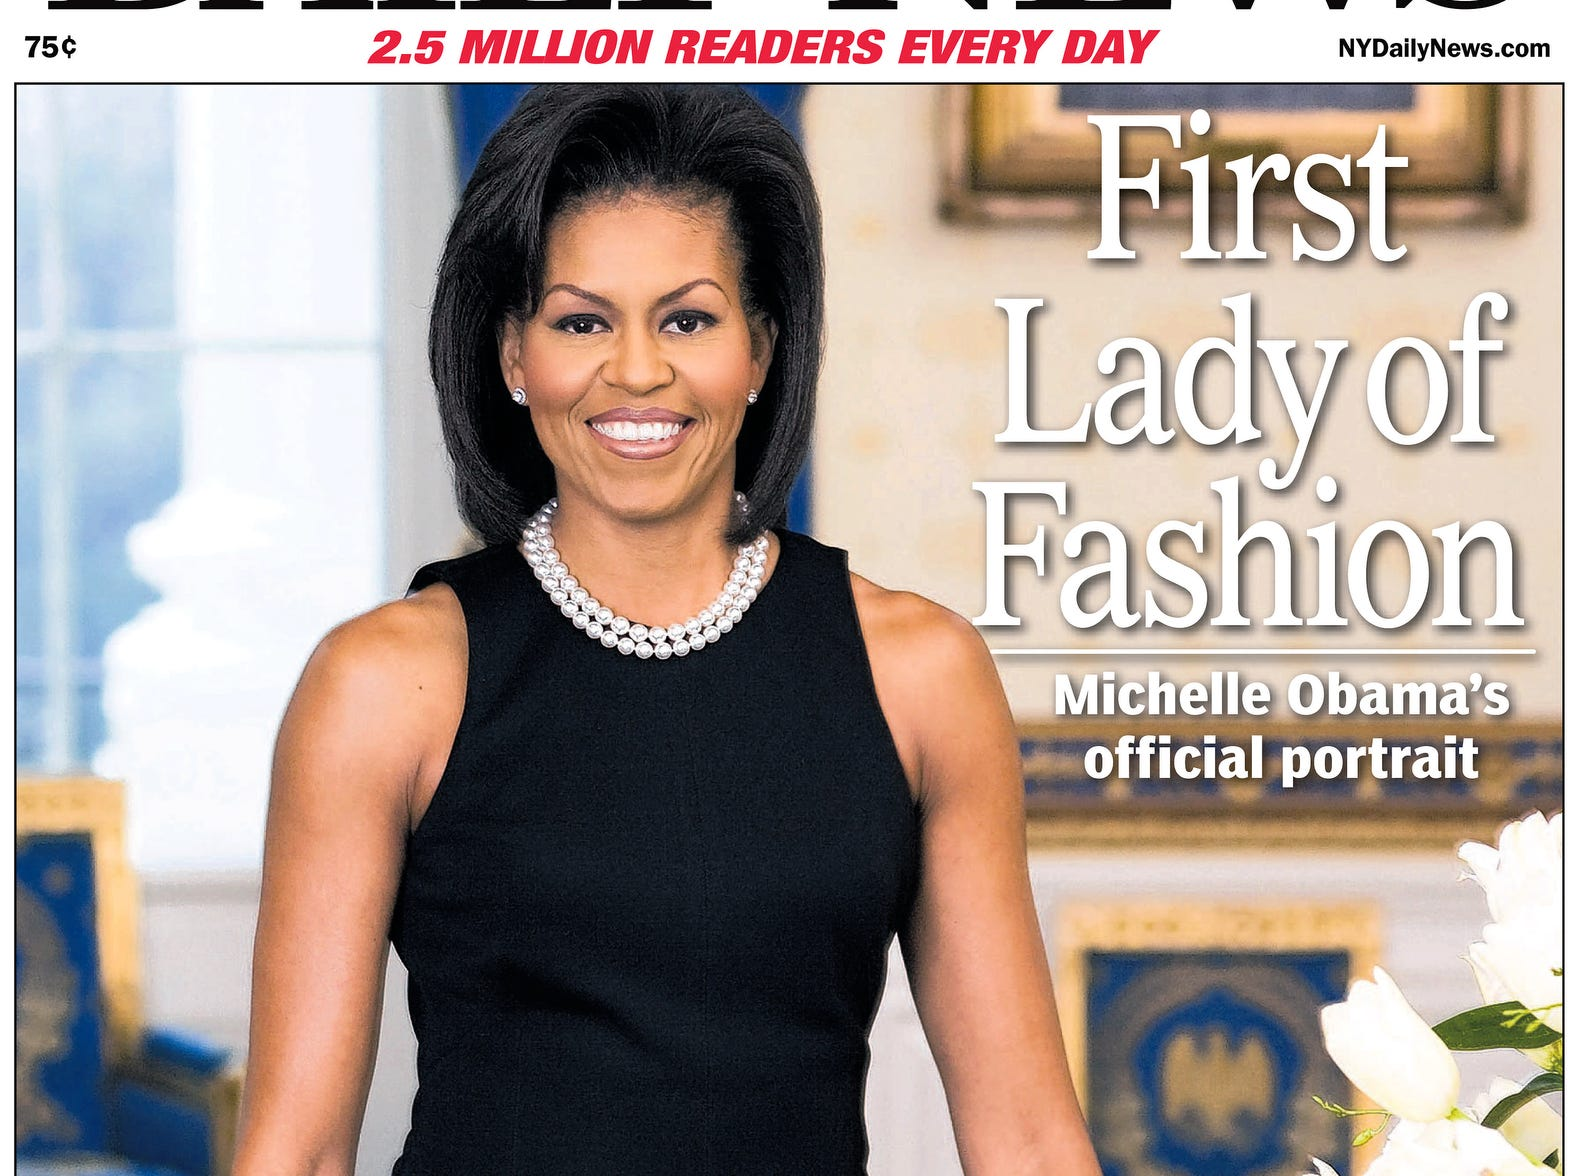 UNITED STATES - FEBRUARY 28:  Daily News front page February 28, 2009, Headline: First Lady of Fashion, Michelle Obama's official portrait  (Photo by NY Daily News Archive via Getty Images)